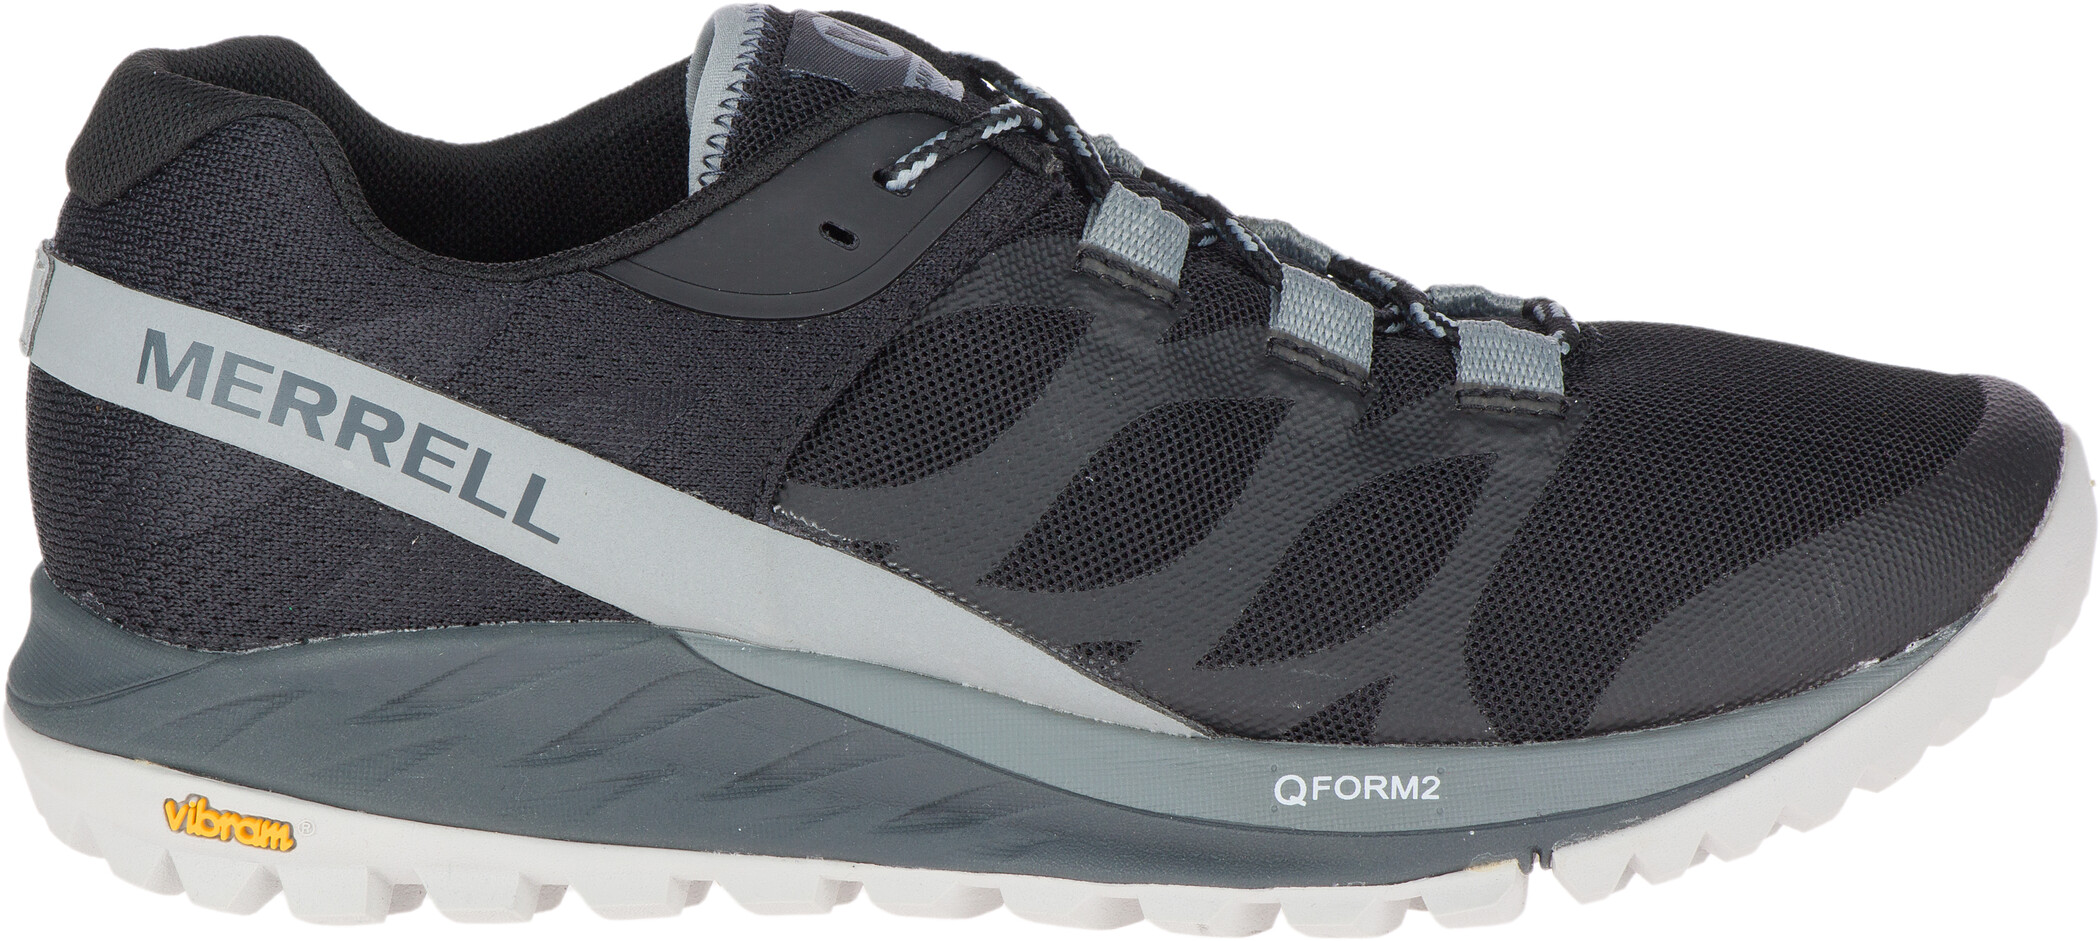 Merrell Antora Sko Damer, black (2019) | Shoes and overlays